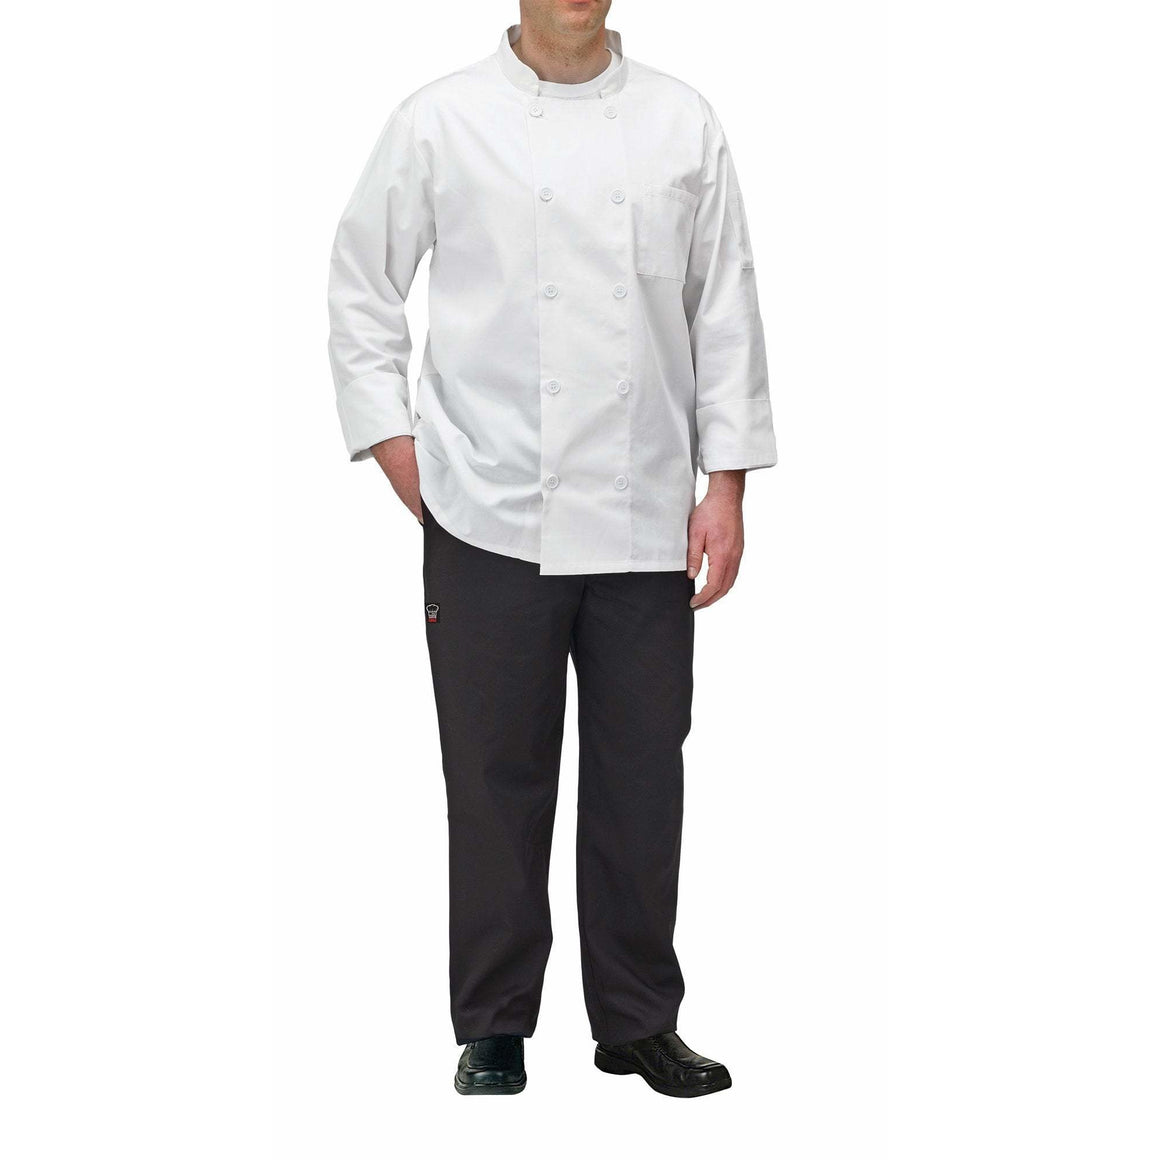 Winco - UNF-5WXXL - Chef jacket, white, 2X - Apparel - Maltese & Co New and Used  restaurant Equipment